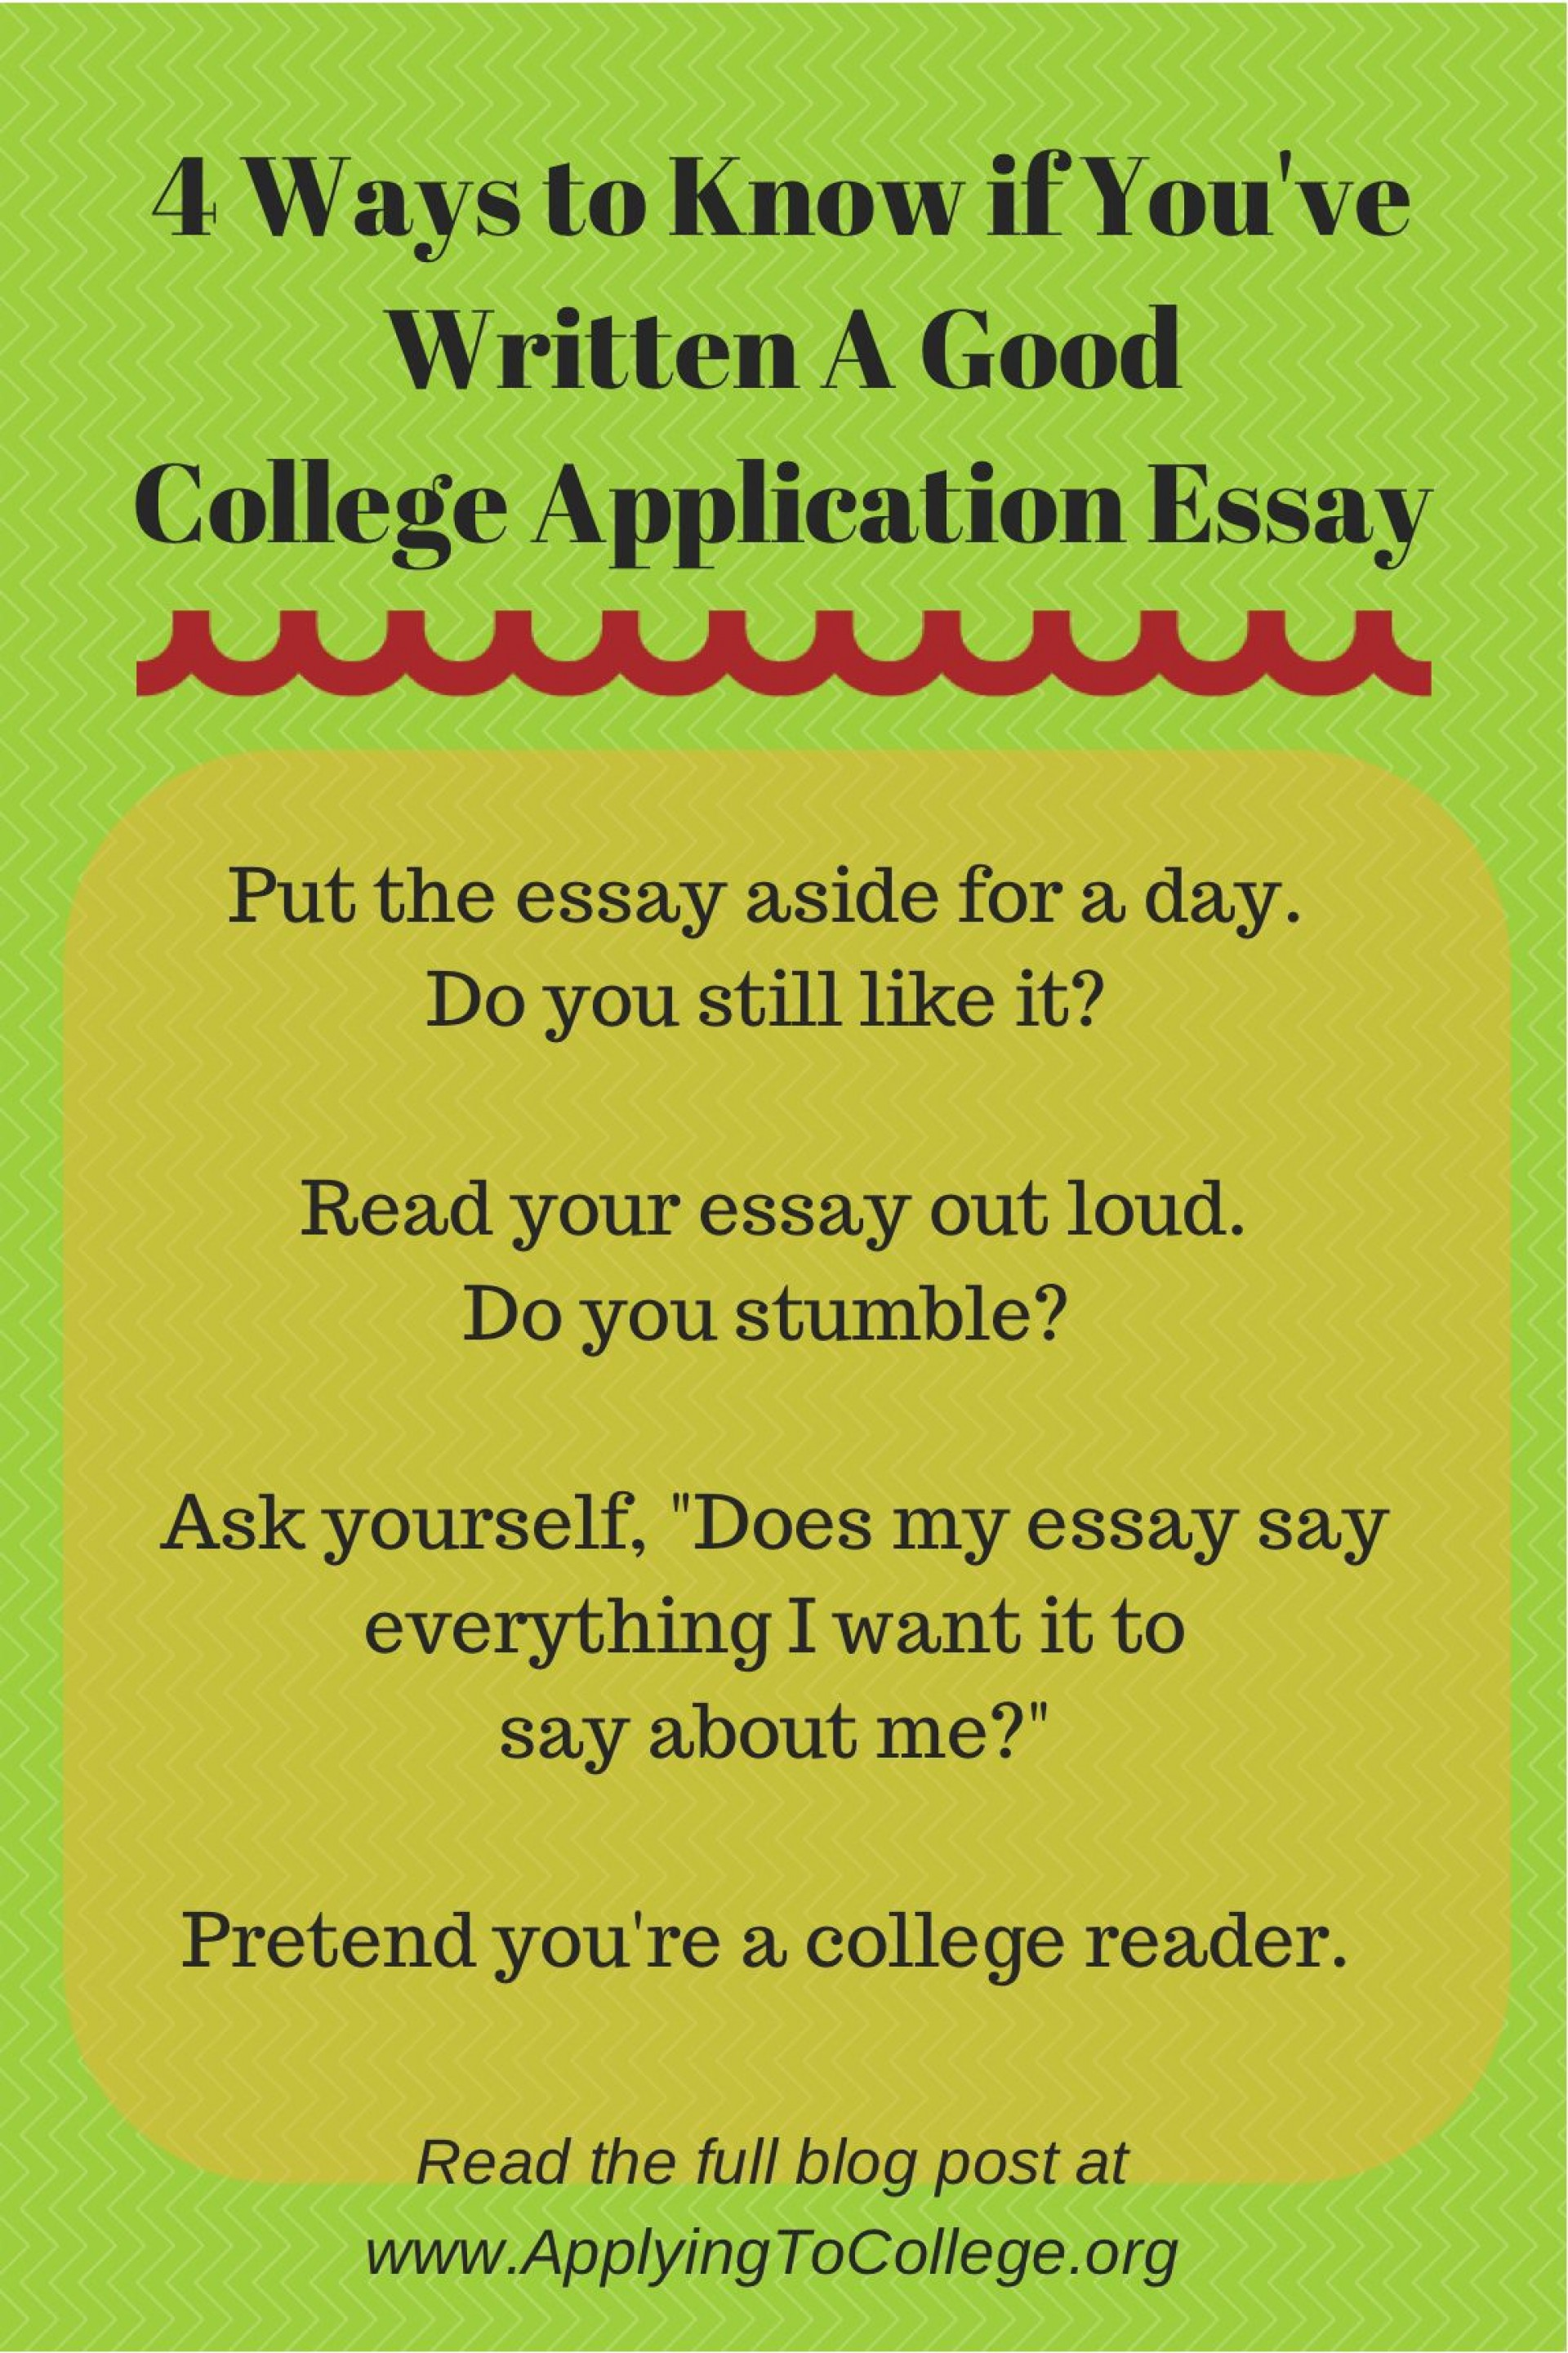 003 Common Appay Prompts How To Write Application School Uc College Admission Ucf Prompt Examples Texas Admissions Rare App Essay 2015-16 1920